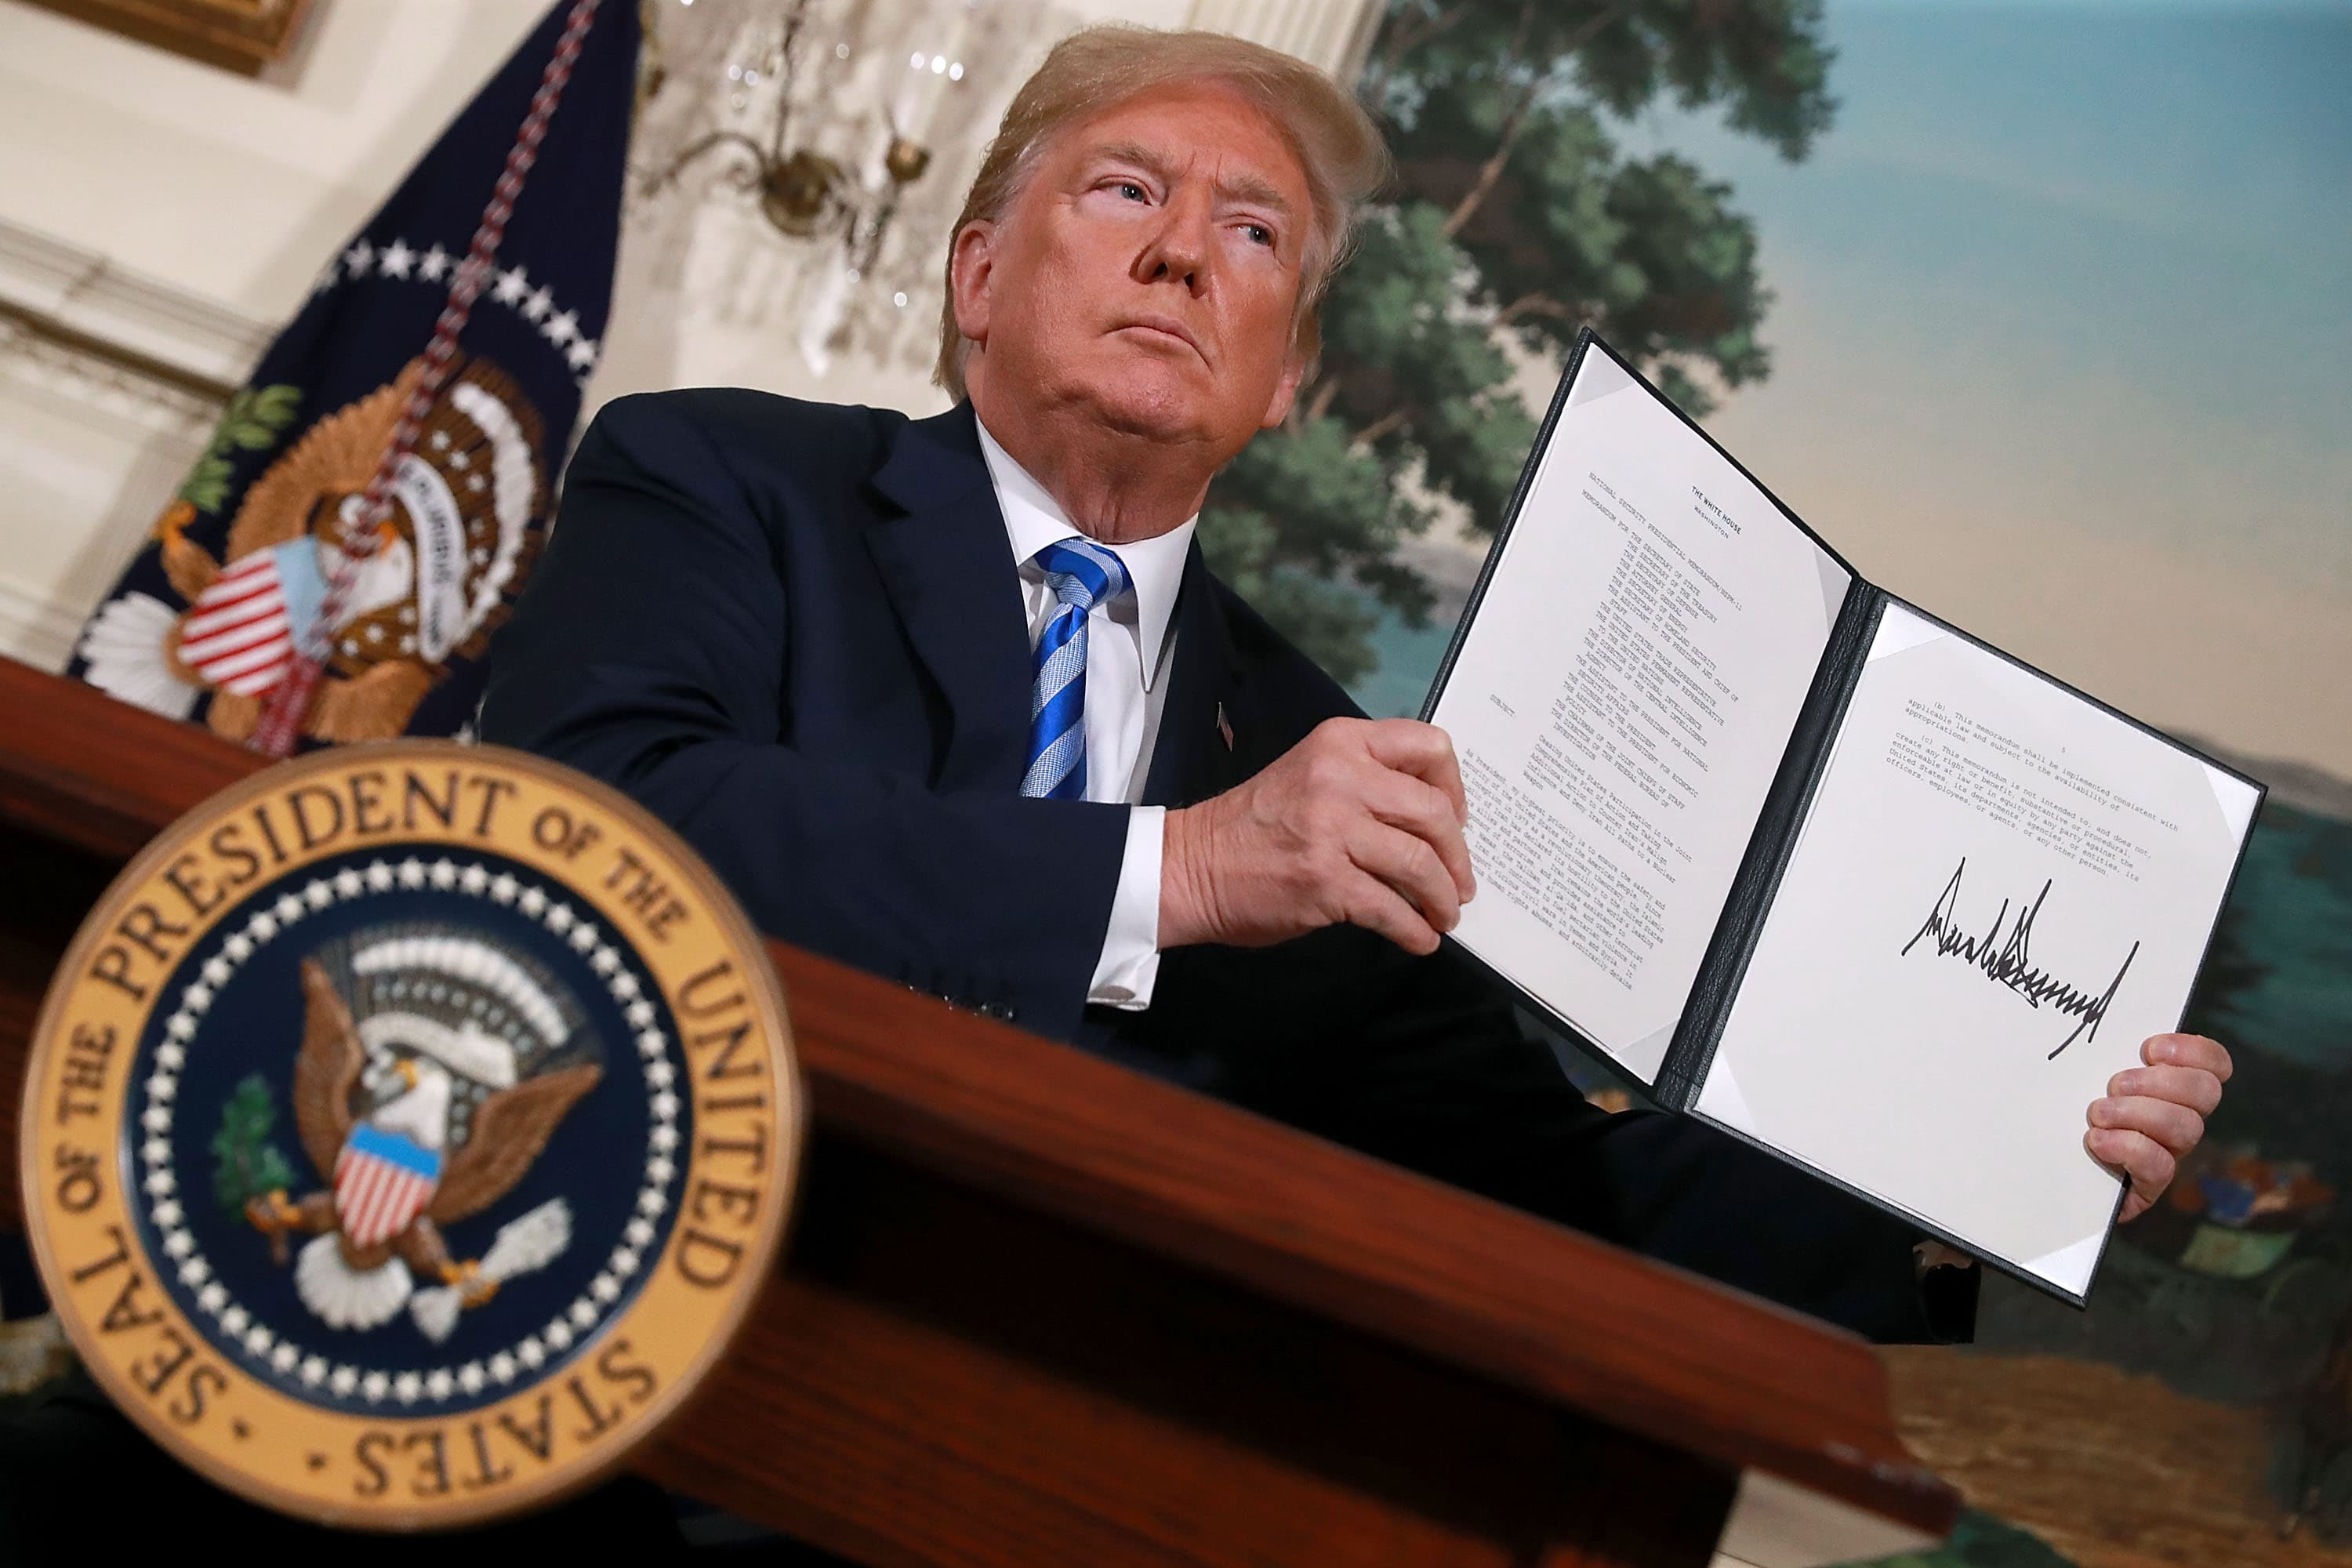 Donald Trump announces US withdrawal from the Iran nuclear deal, 8 May. (Photo: Chip Somodevilla/Getty Images)